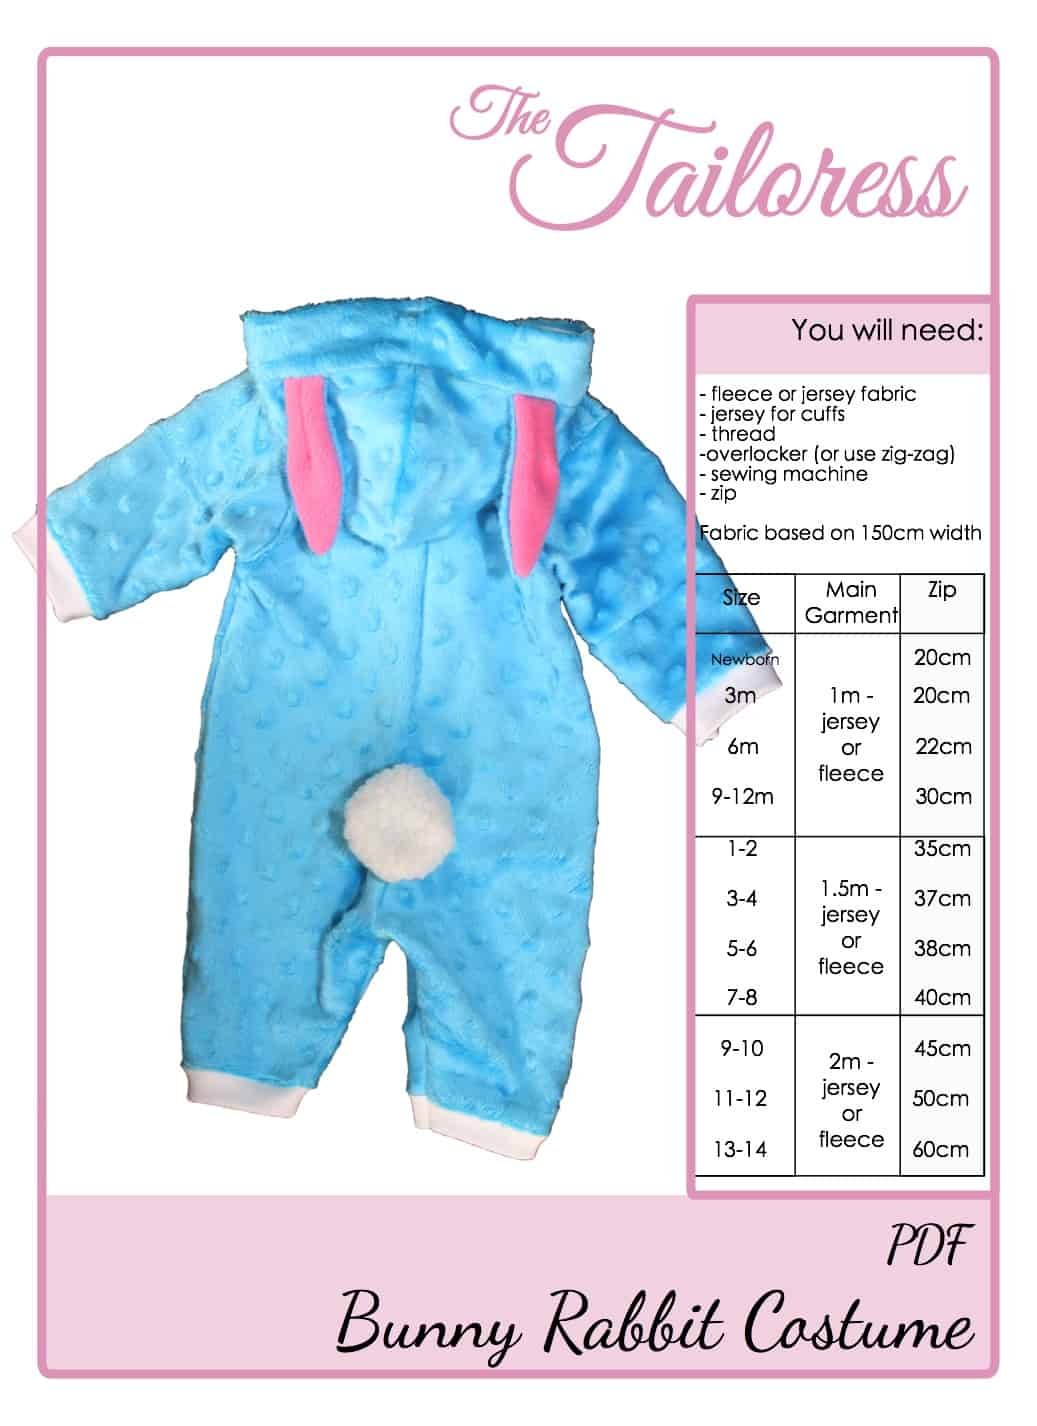 The Tailoress PDF Sewing Patterns - Bunny Rabbit Costume Playsuit Pyjama Tutorial